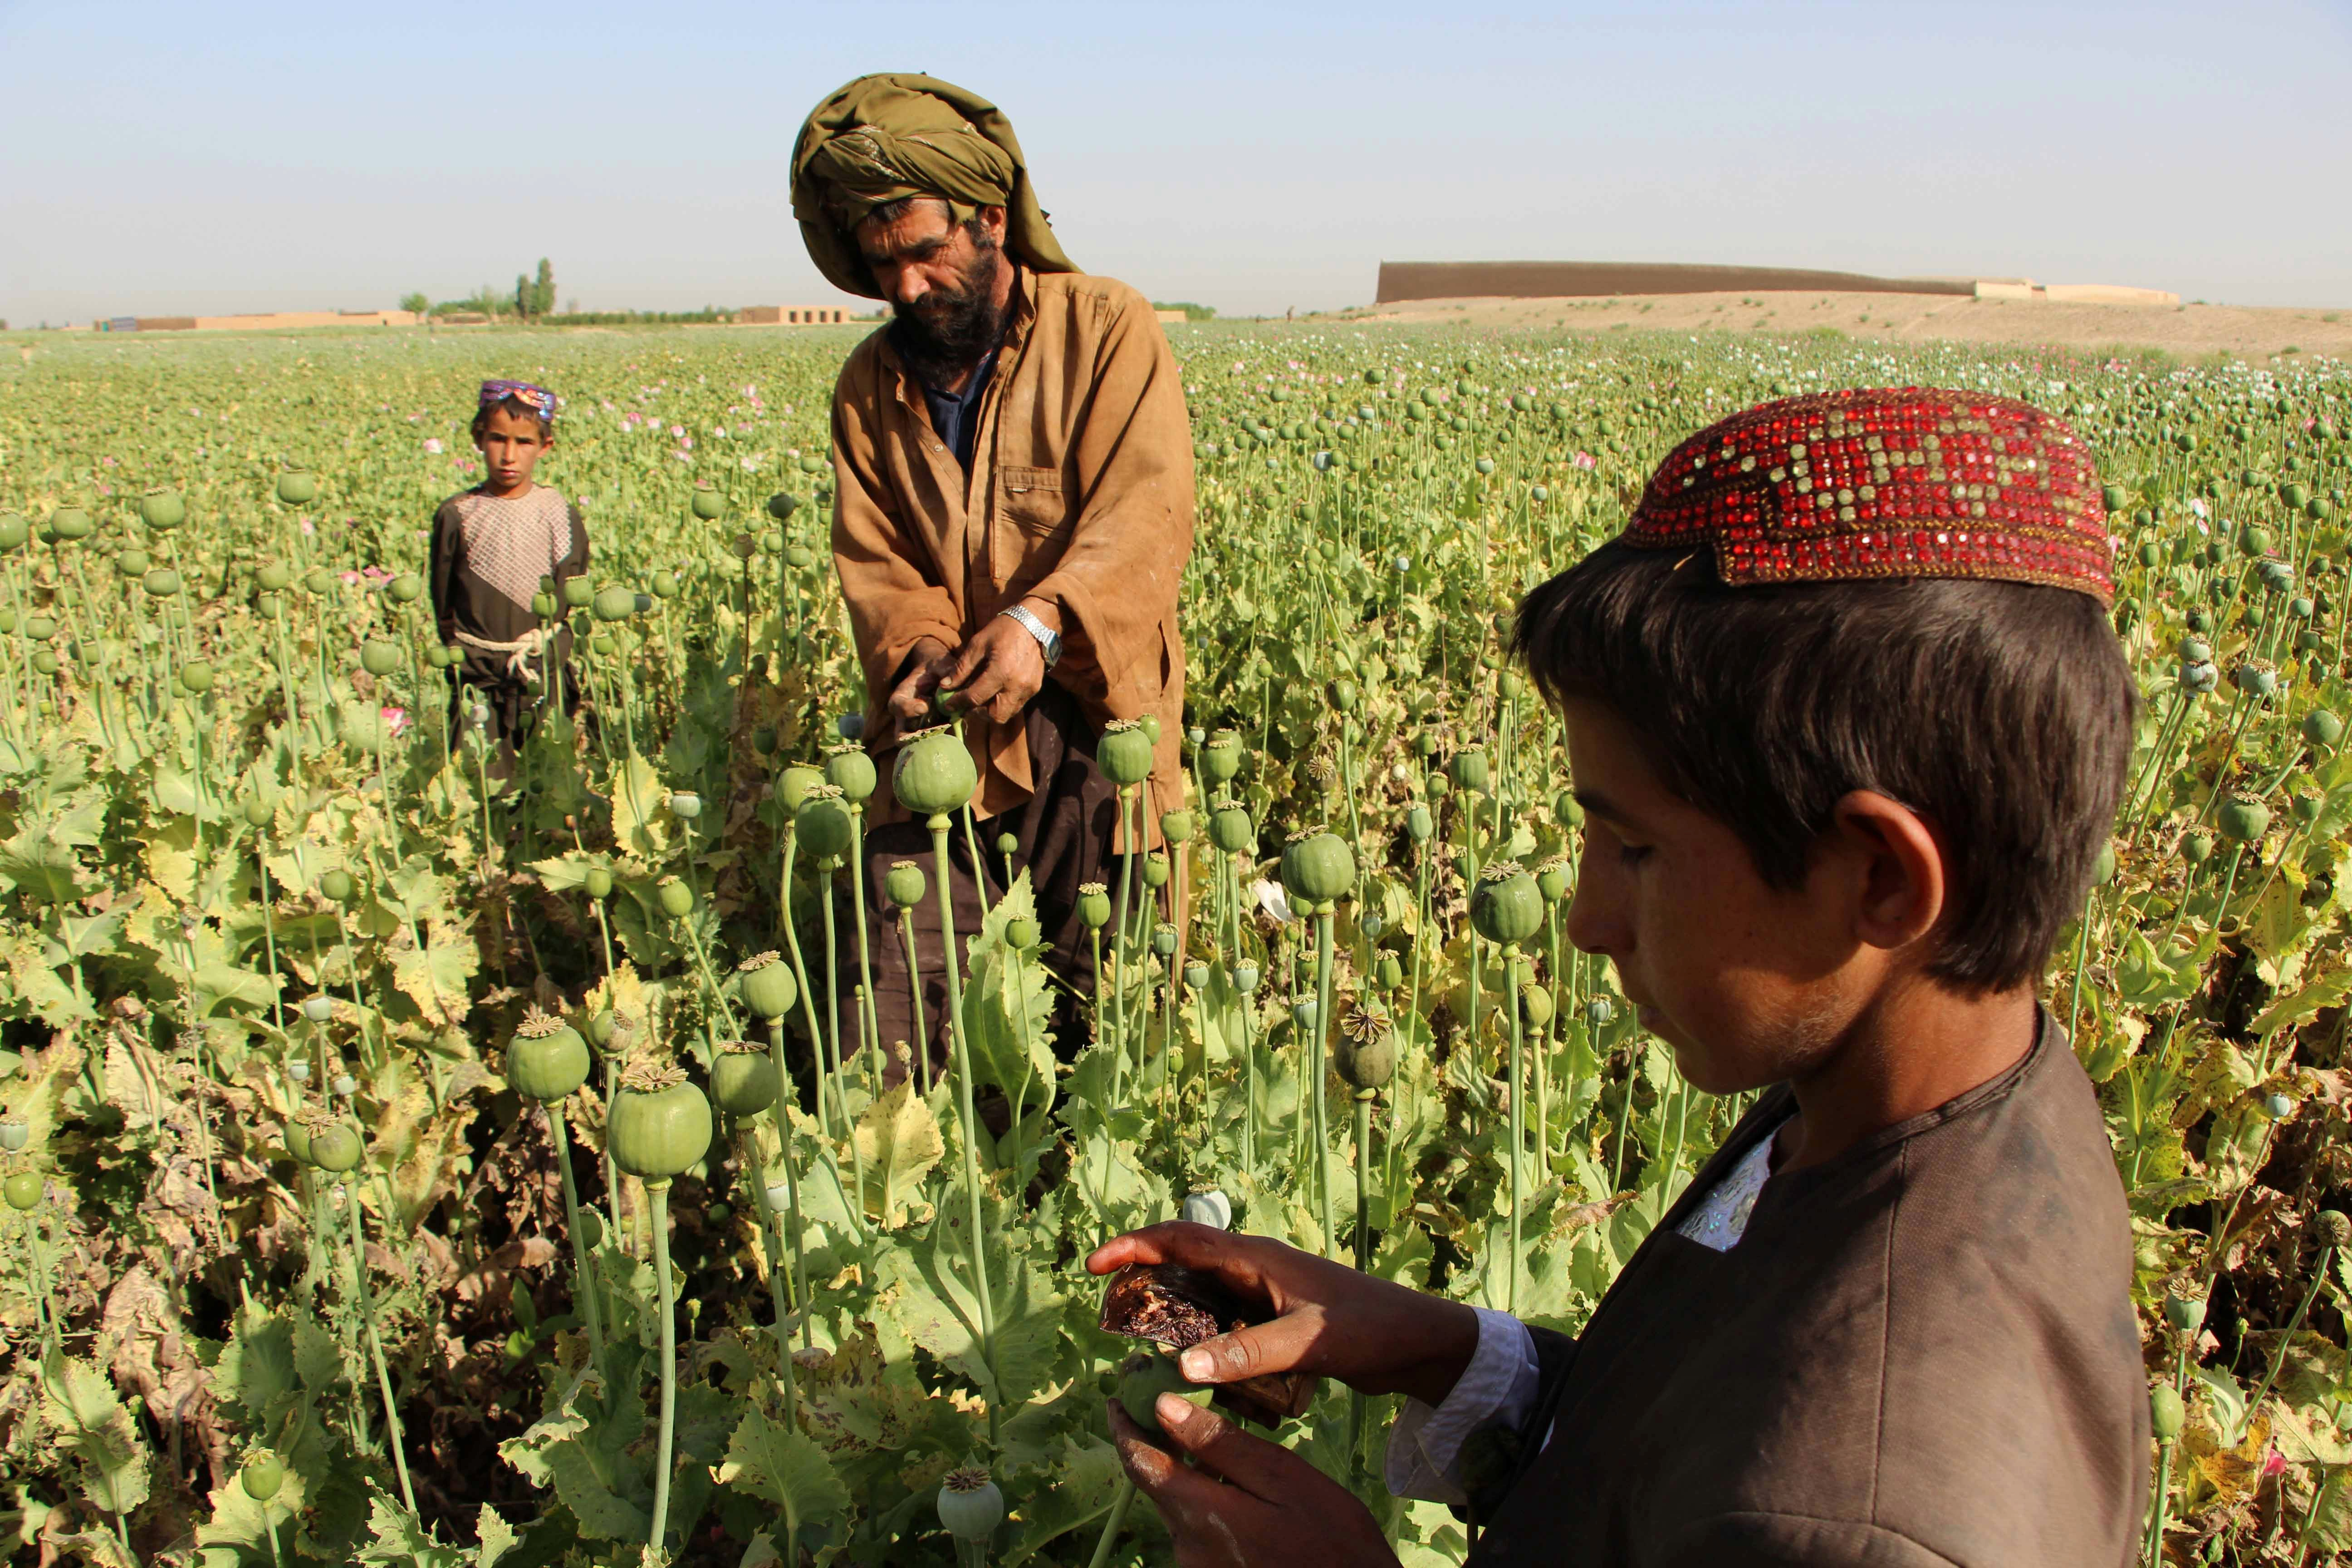 Afghanistan attempts to counter drug use through sports